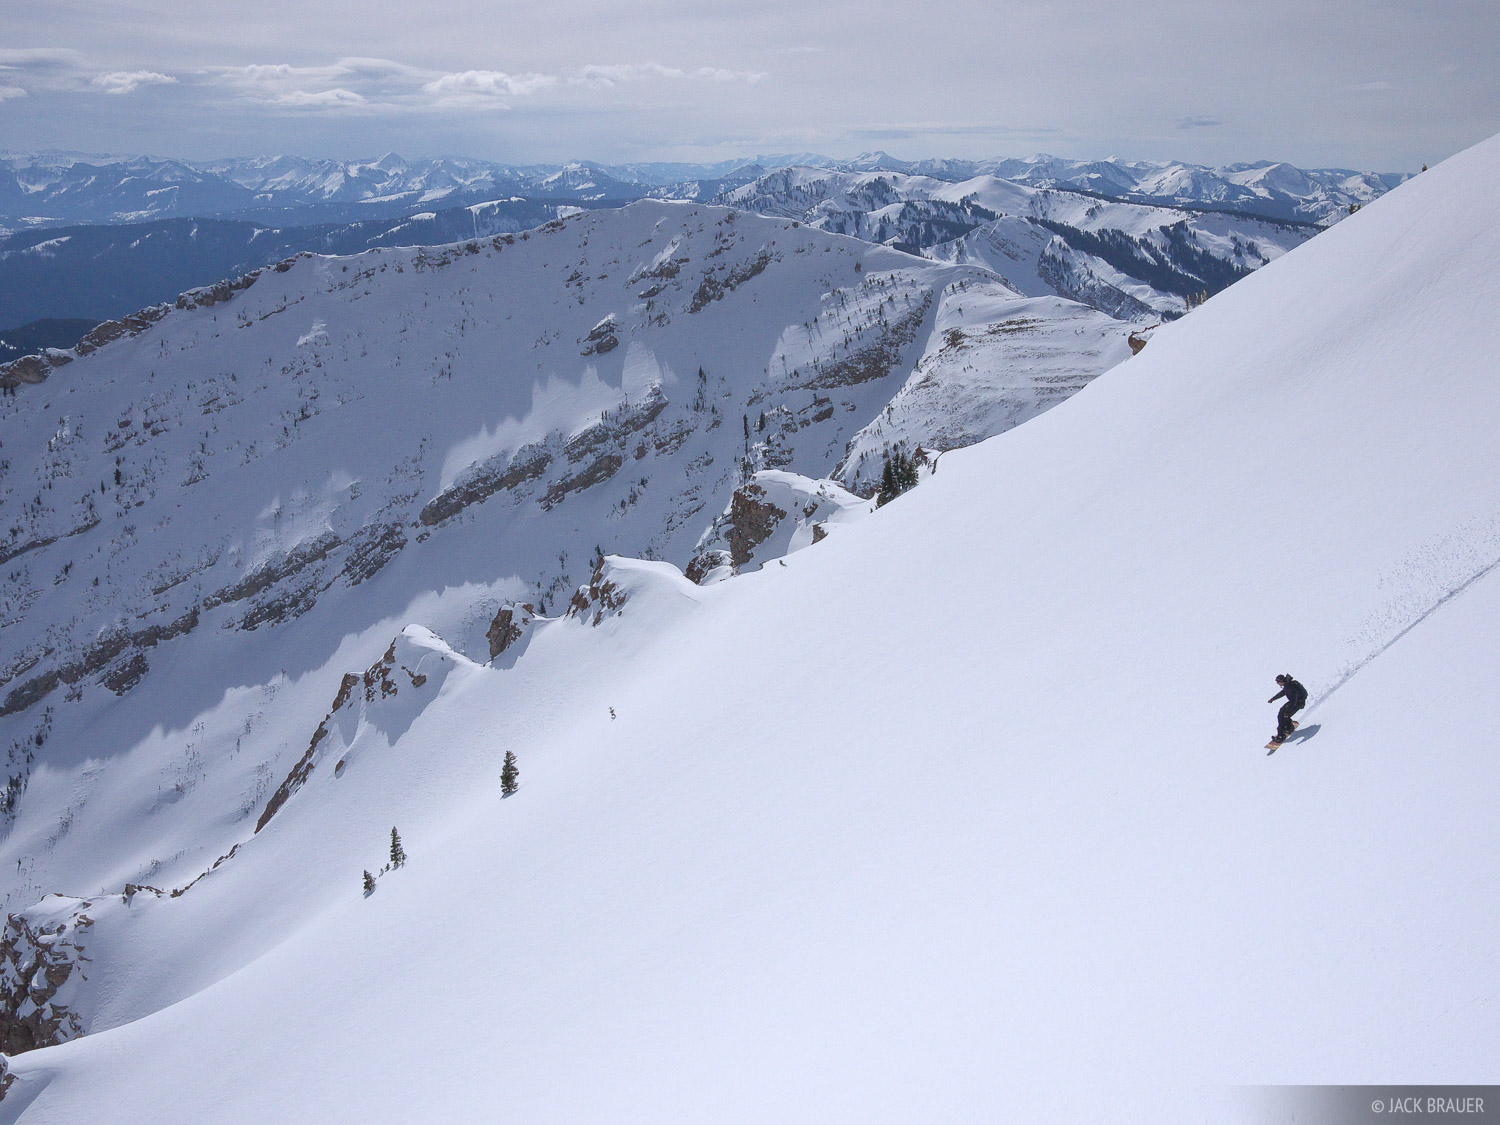 Jason King rides into a big bowl at the beginning of a 4,000 foot descent - March.